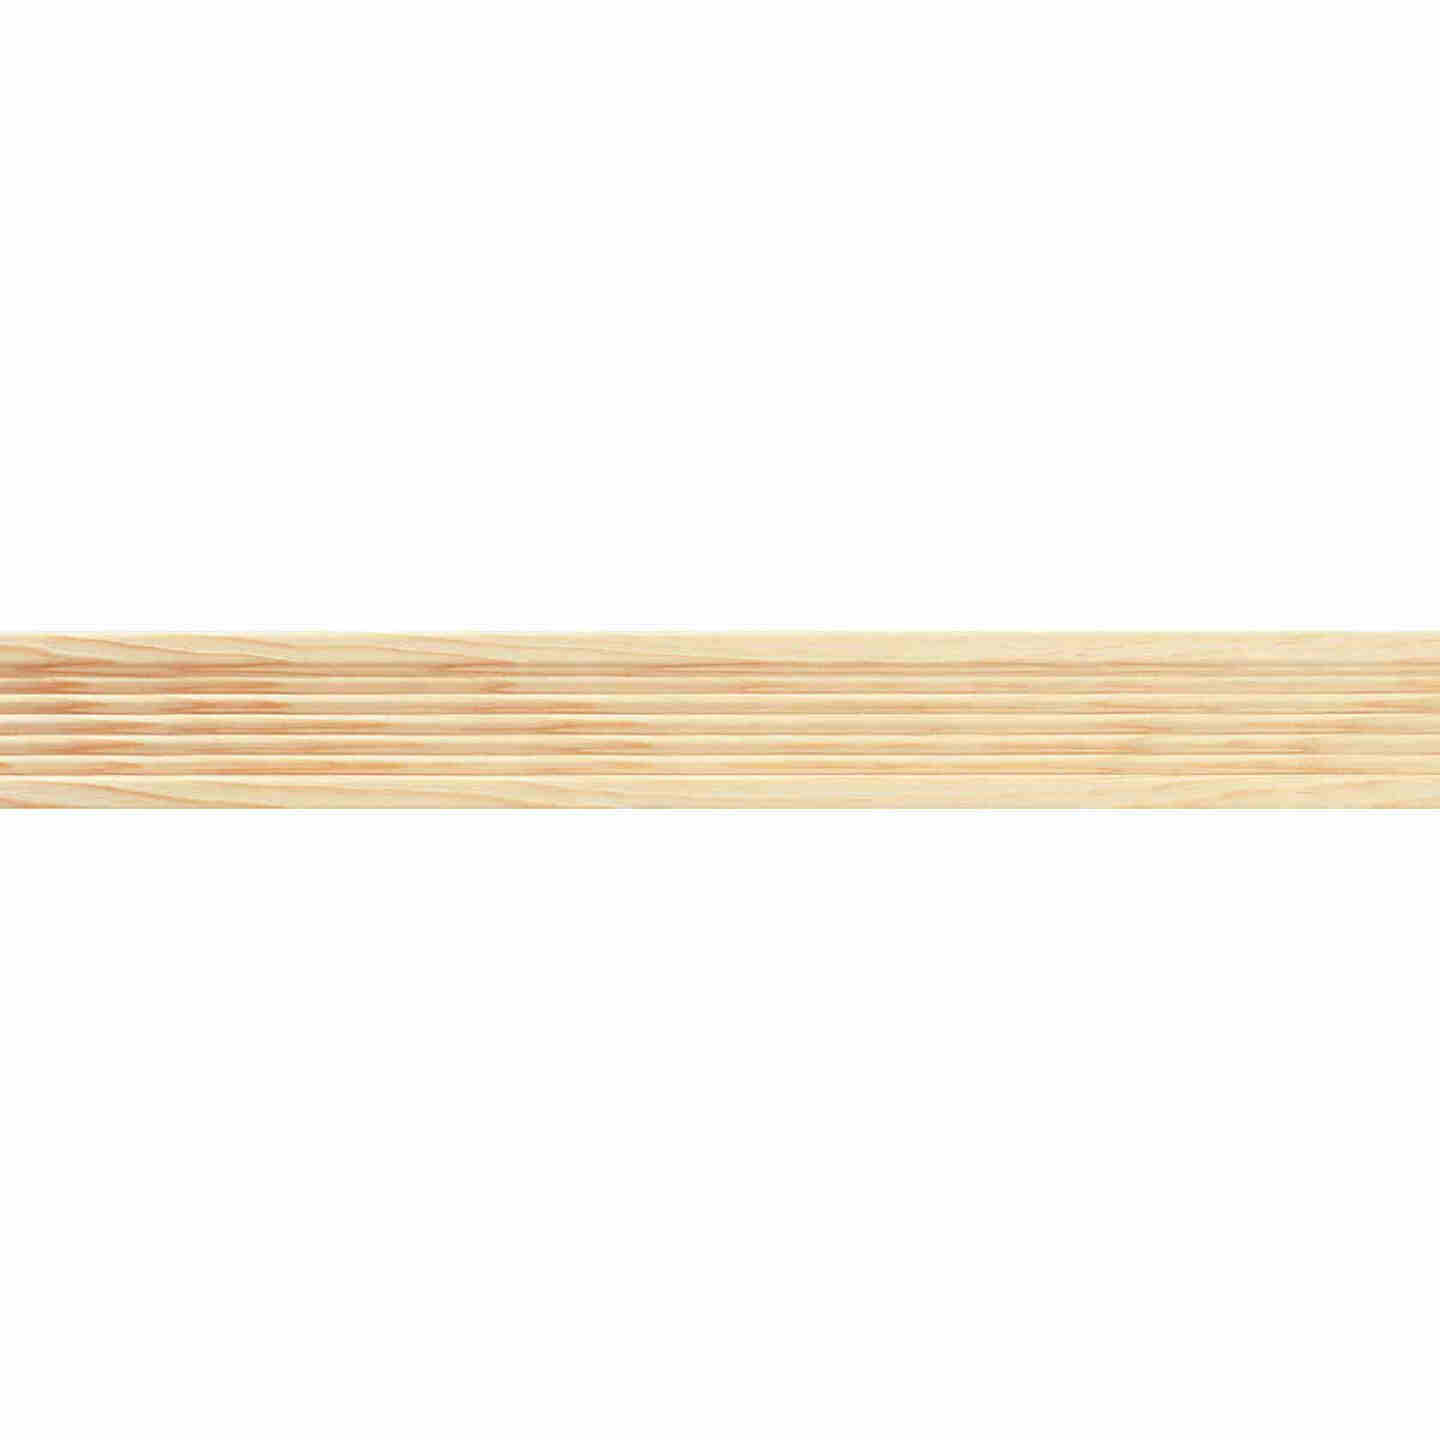 House of Fara 7/16 In. W. x 2-1/4 In. H. x 7 Ft. L. Natural Pine Fluted Wood Casing Image 2